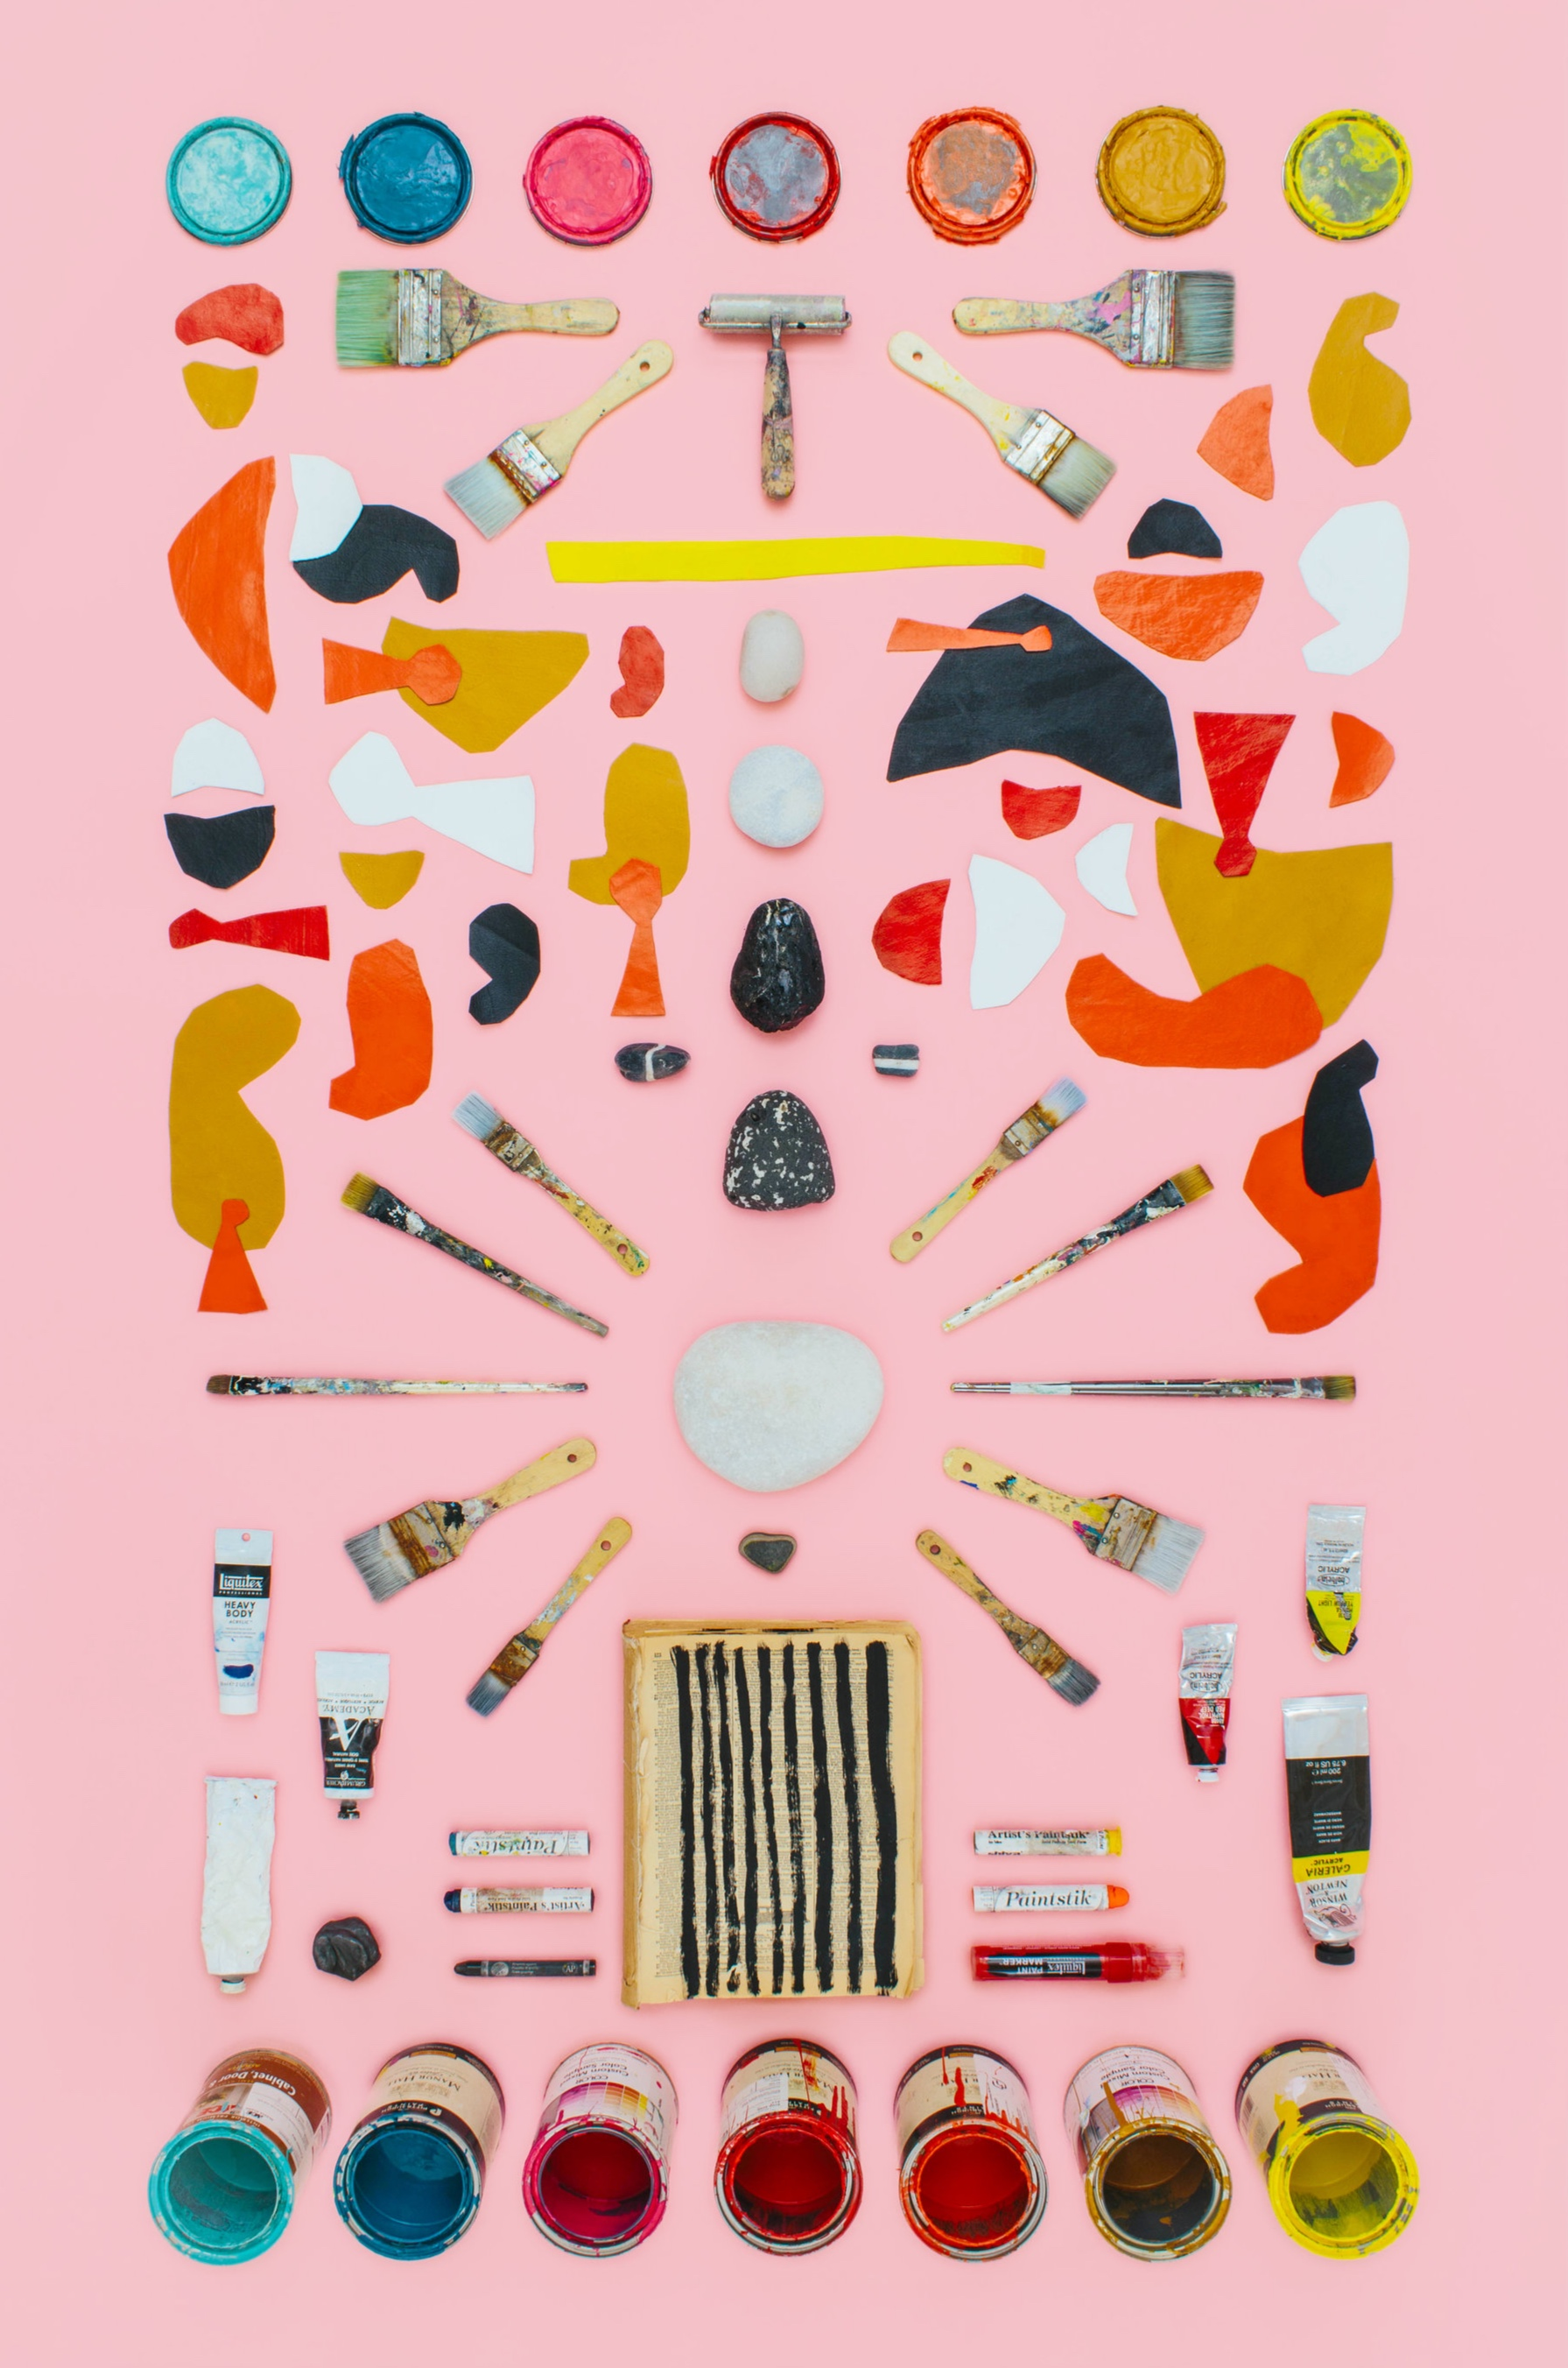 THE ARTIST. A taxonomical art print of Olivia Stark's studio supplies by Mandy Mohler.